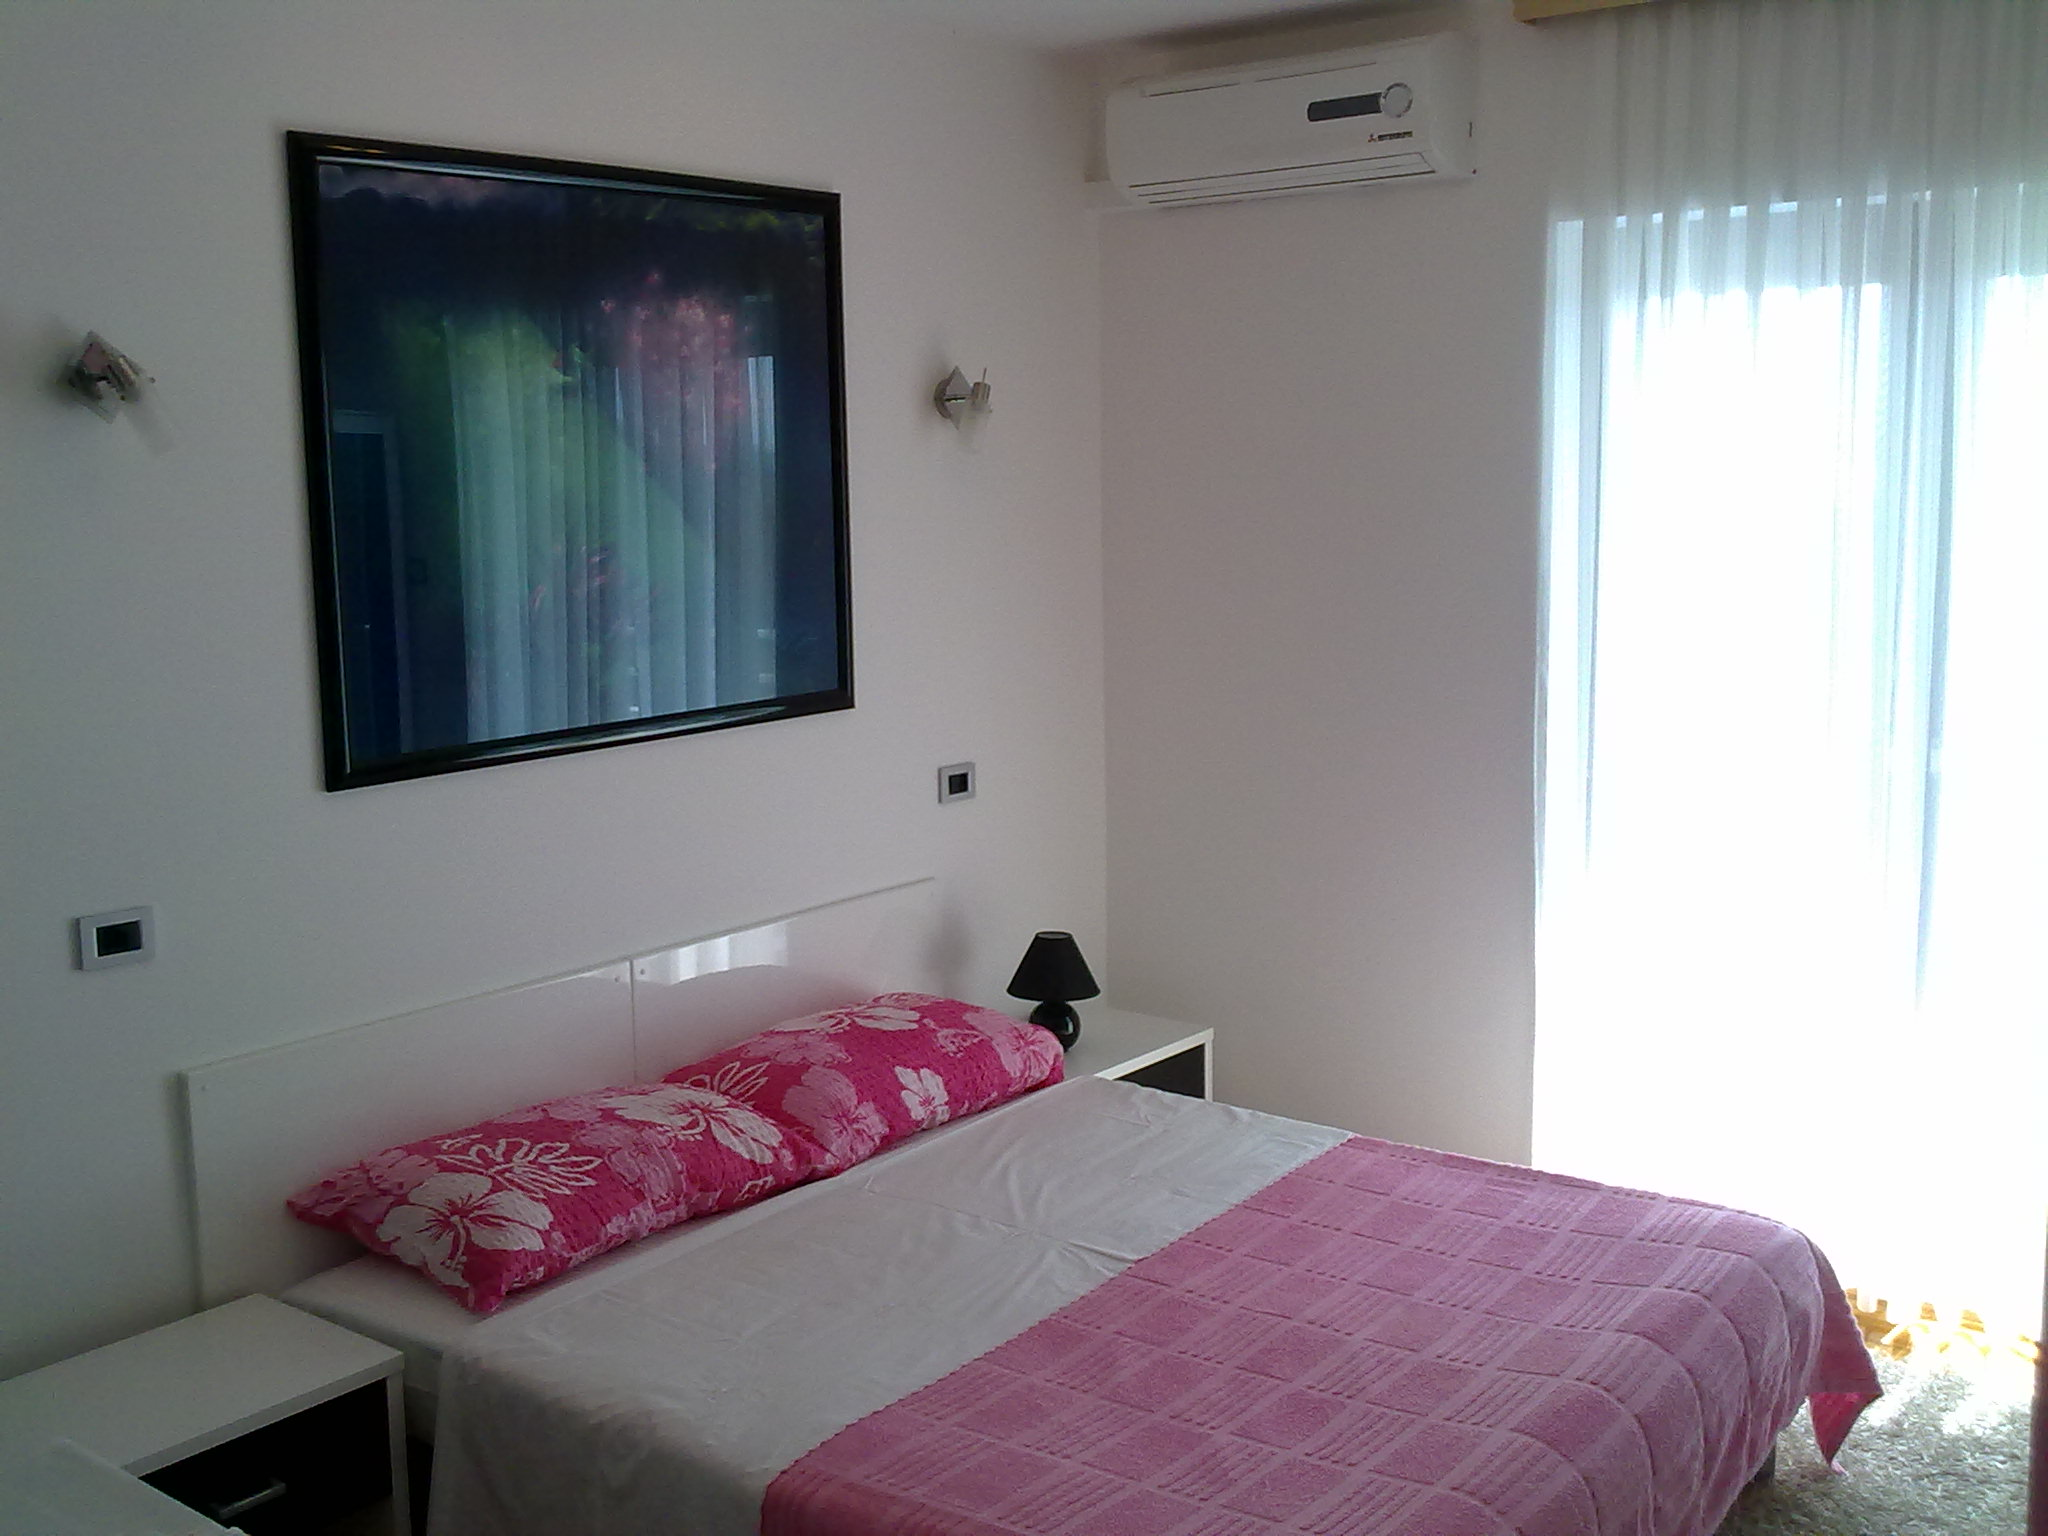 A3 Deluxe One Bedroom Apartment With Sea View 2 4 Adults Villa Roses Apartments Wellness